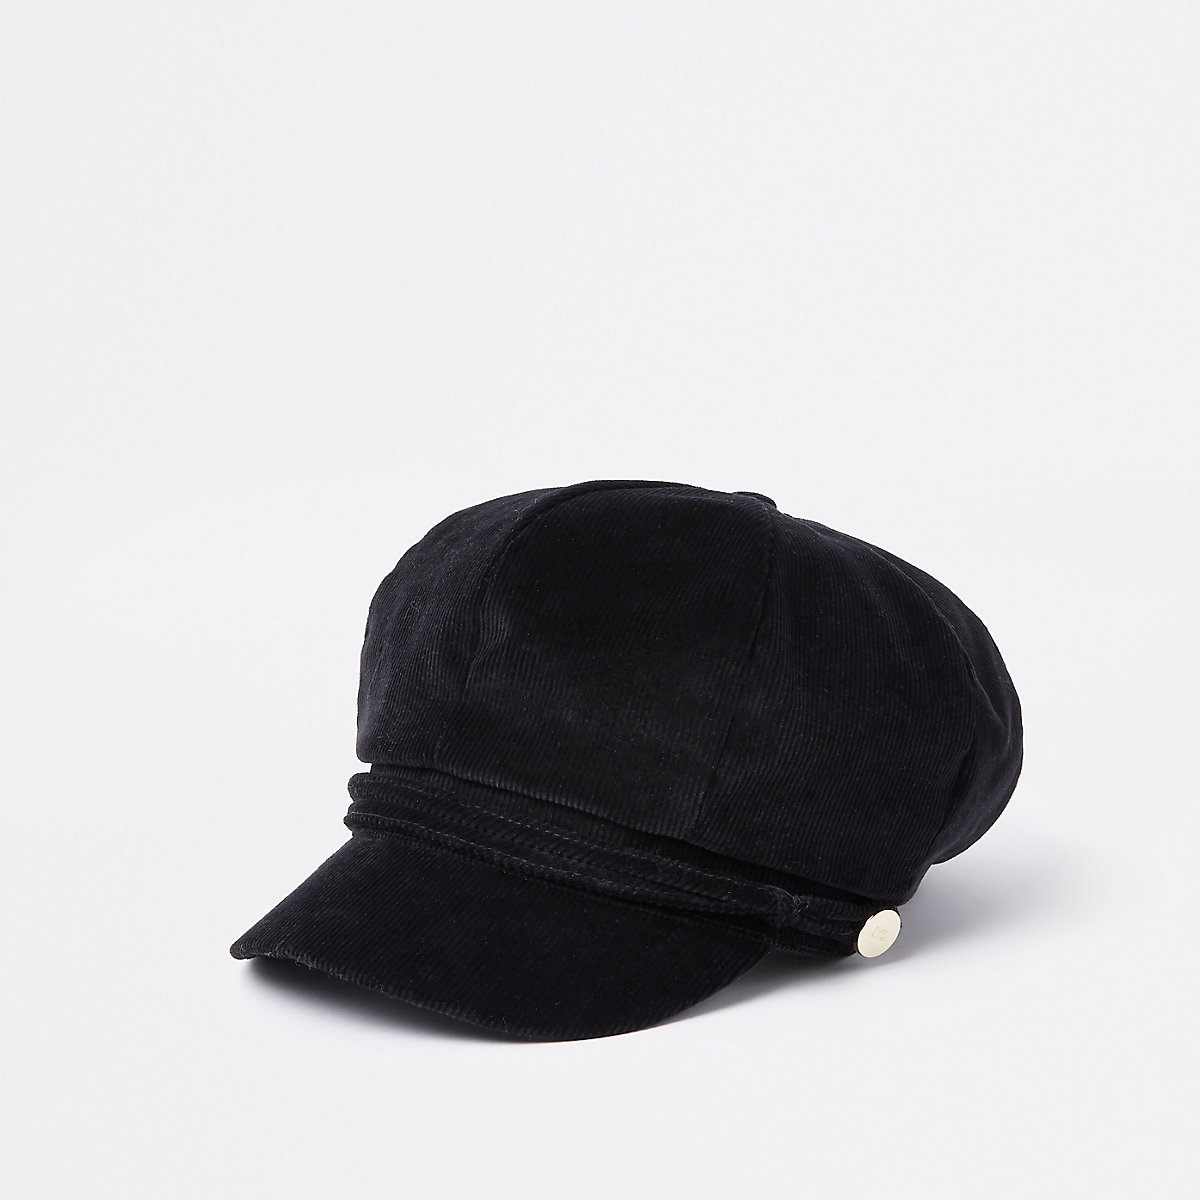 Black cord baker boy hat